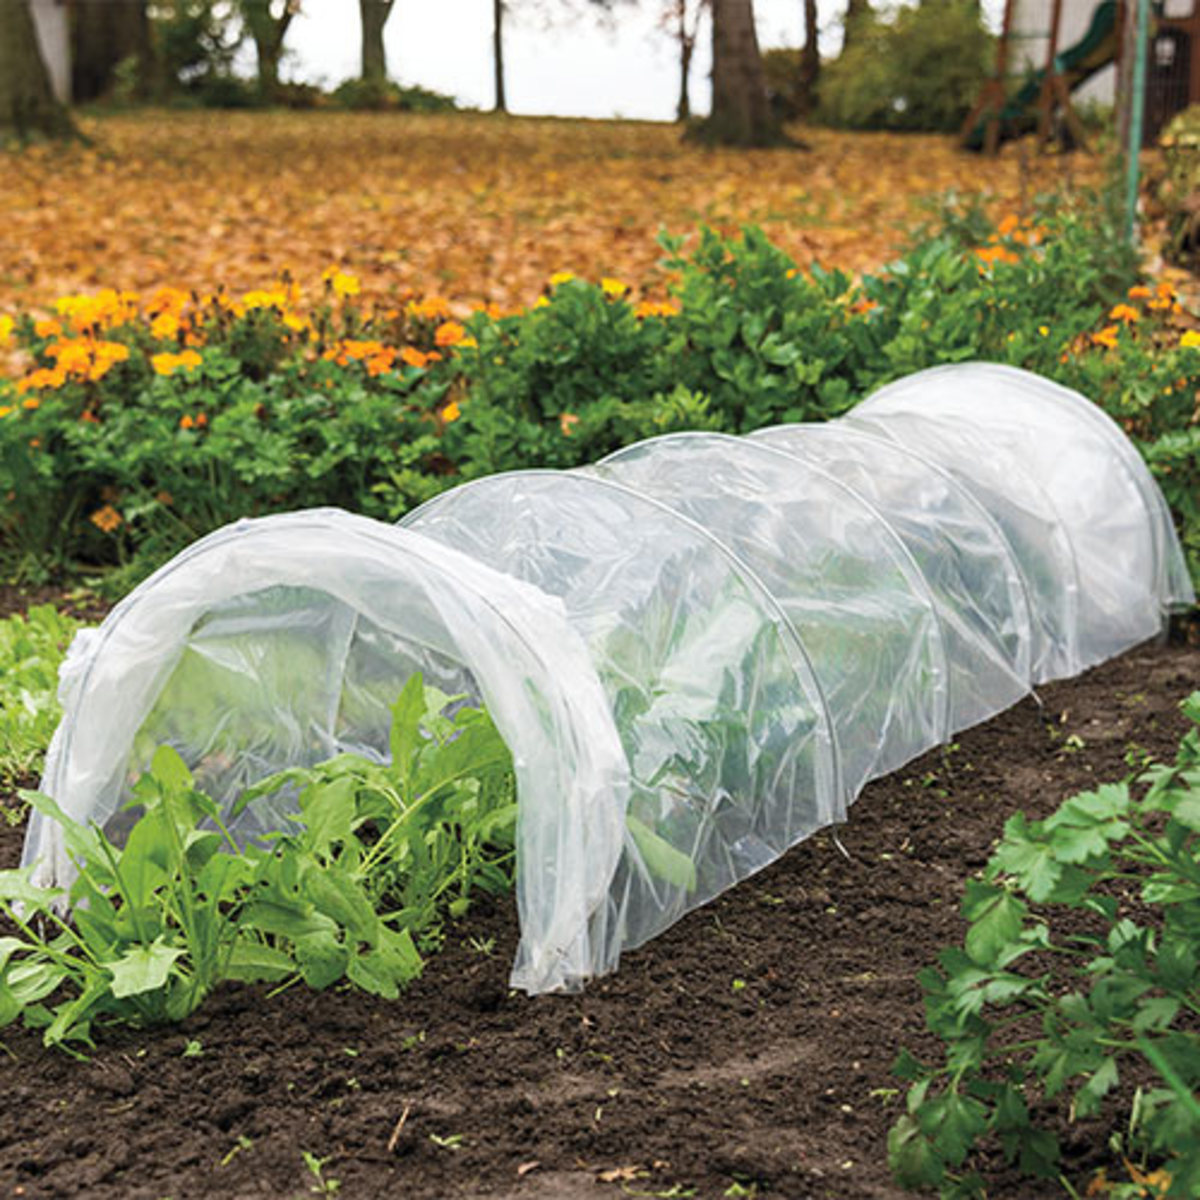 A grow tunnel creates the perfect greenhouse environment for your plants when they need it.